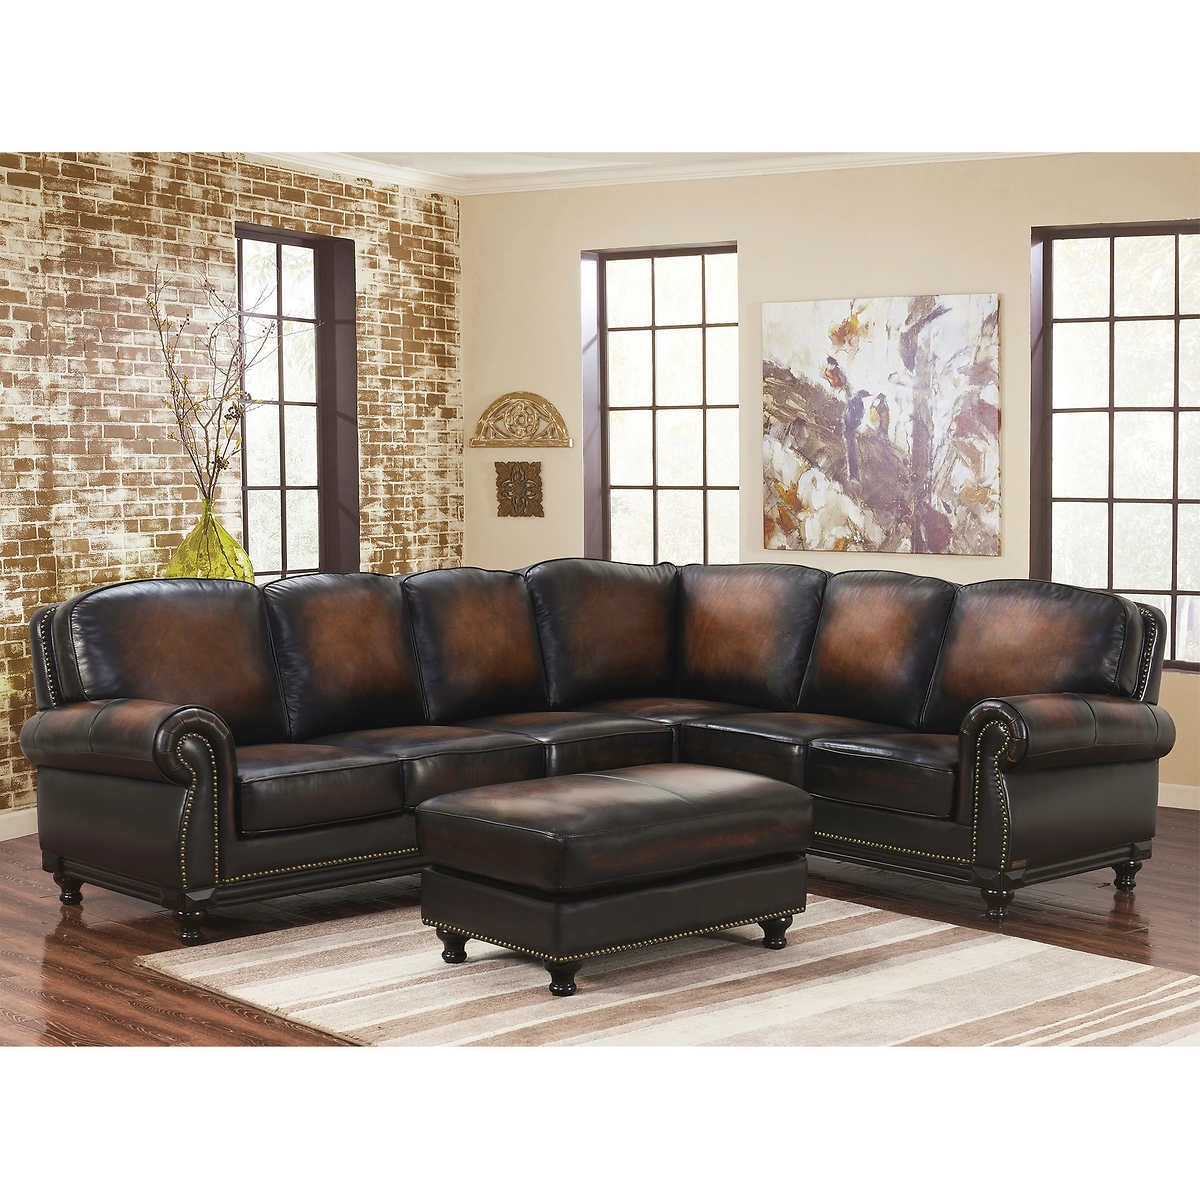 Inspirational Leather Sectional Sofa With Recliner 36 For Sofas And Pertaining To Sectional Sofas With Recliners Leather (View 6 of 10)